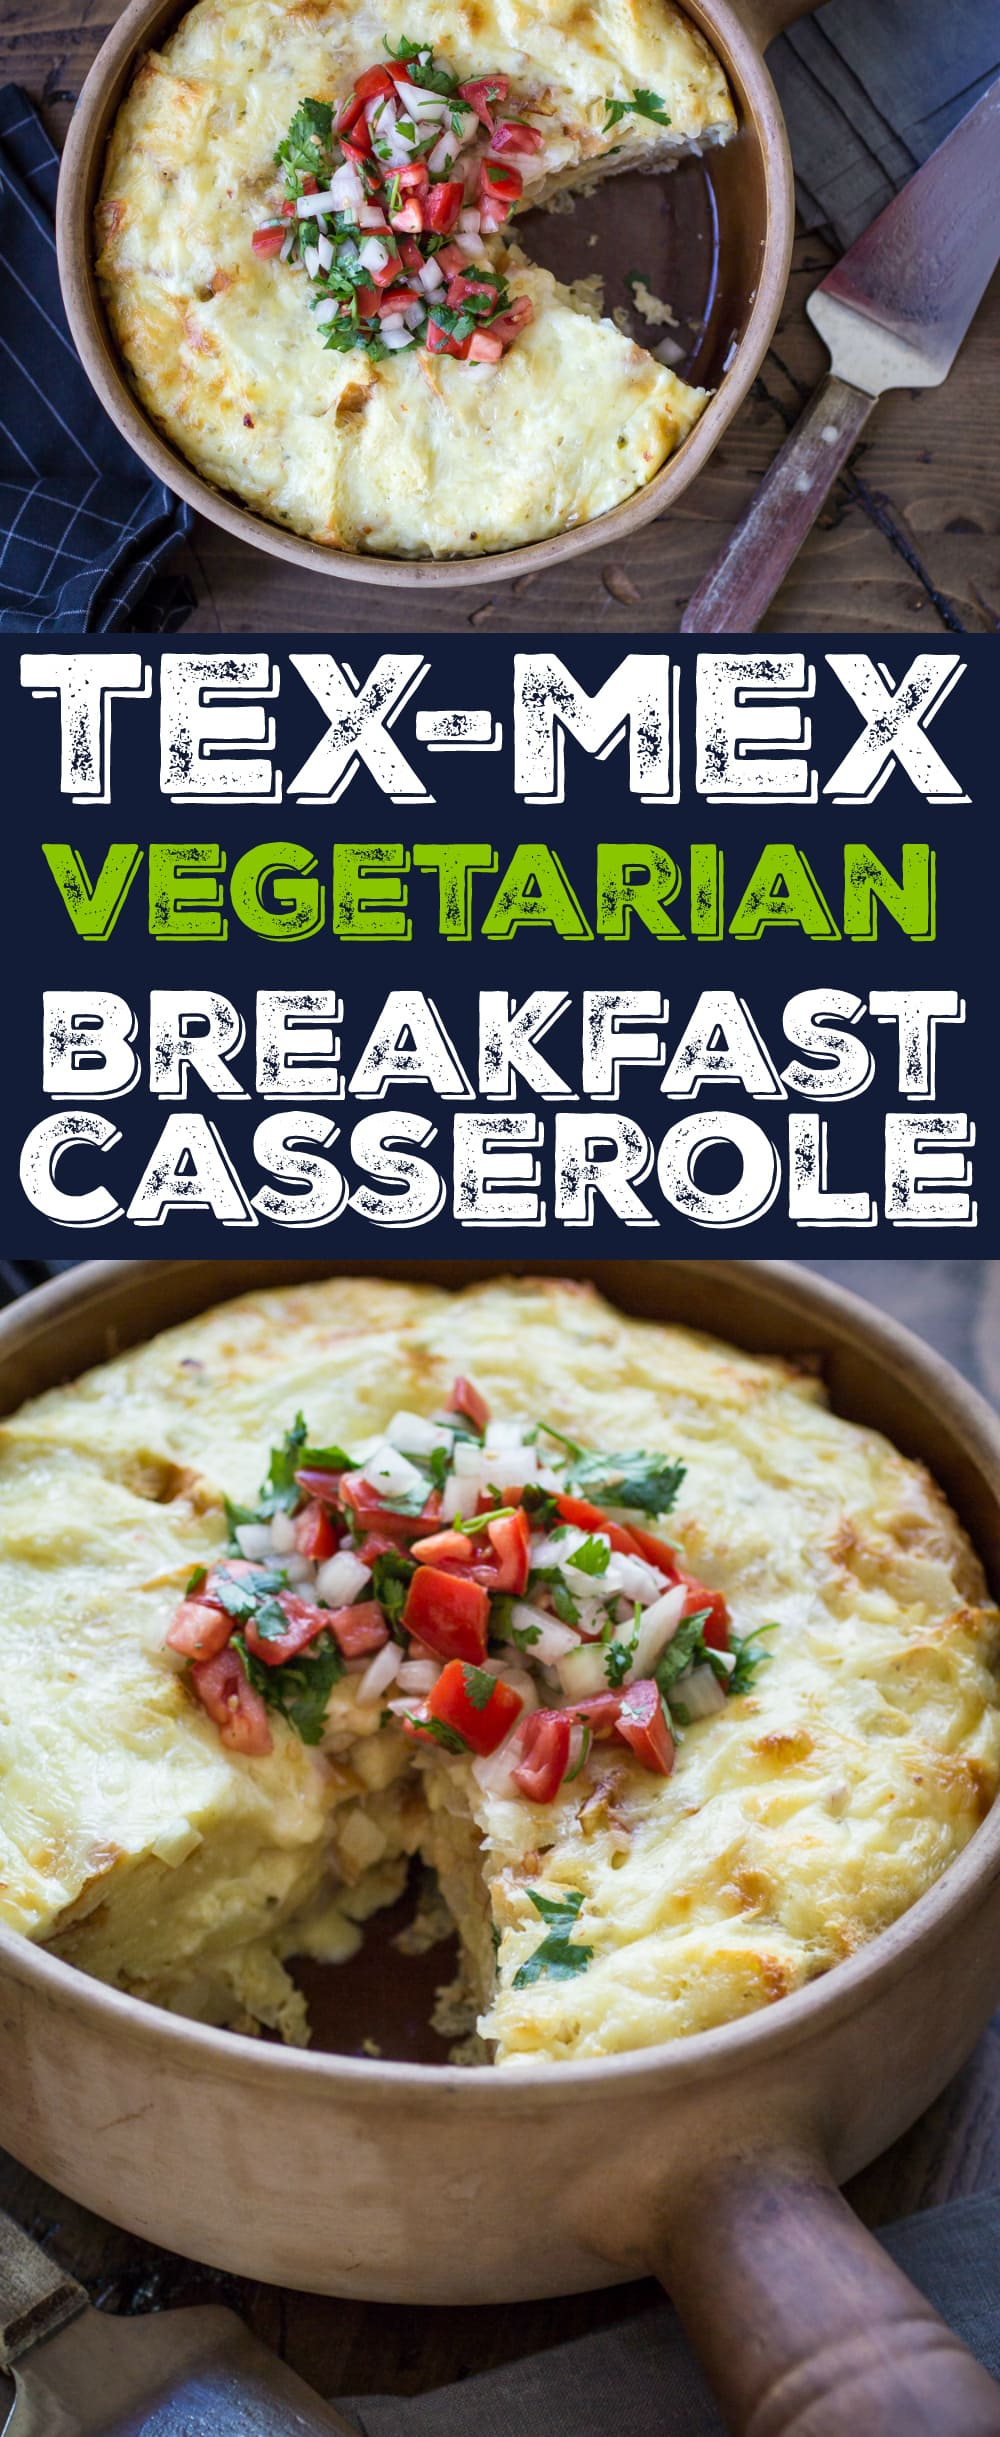 This easy Tex Mex Vegetarian Breakfast Casserole is made with layers of bread, onion, pepperjack cheese before being covered in a spiced egg and milk mixture. Customize it with your favorite toppings!